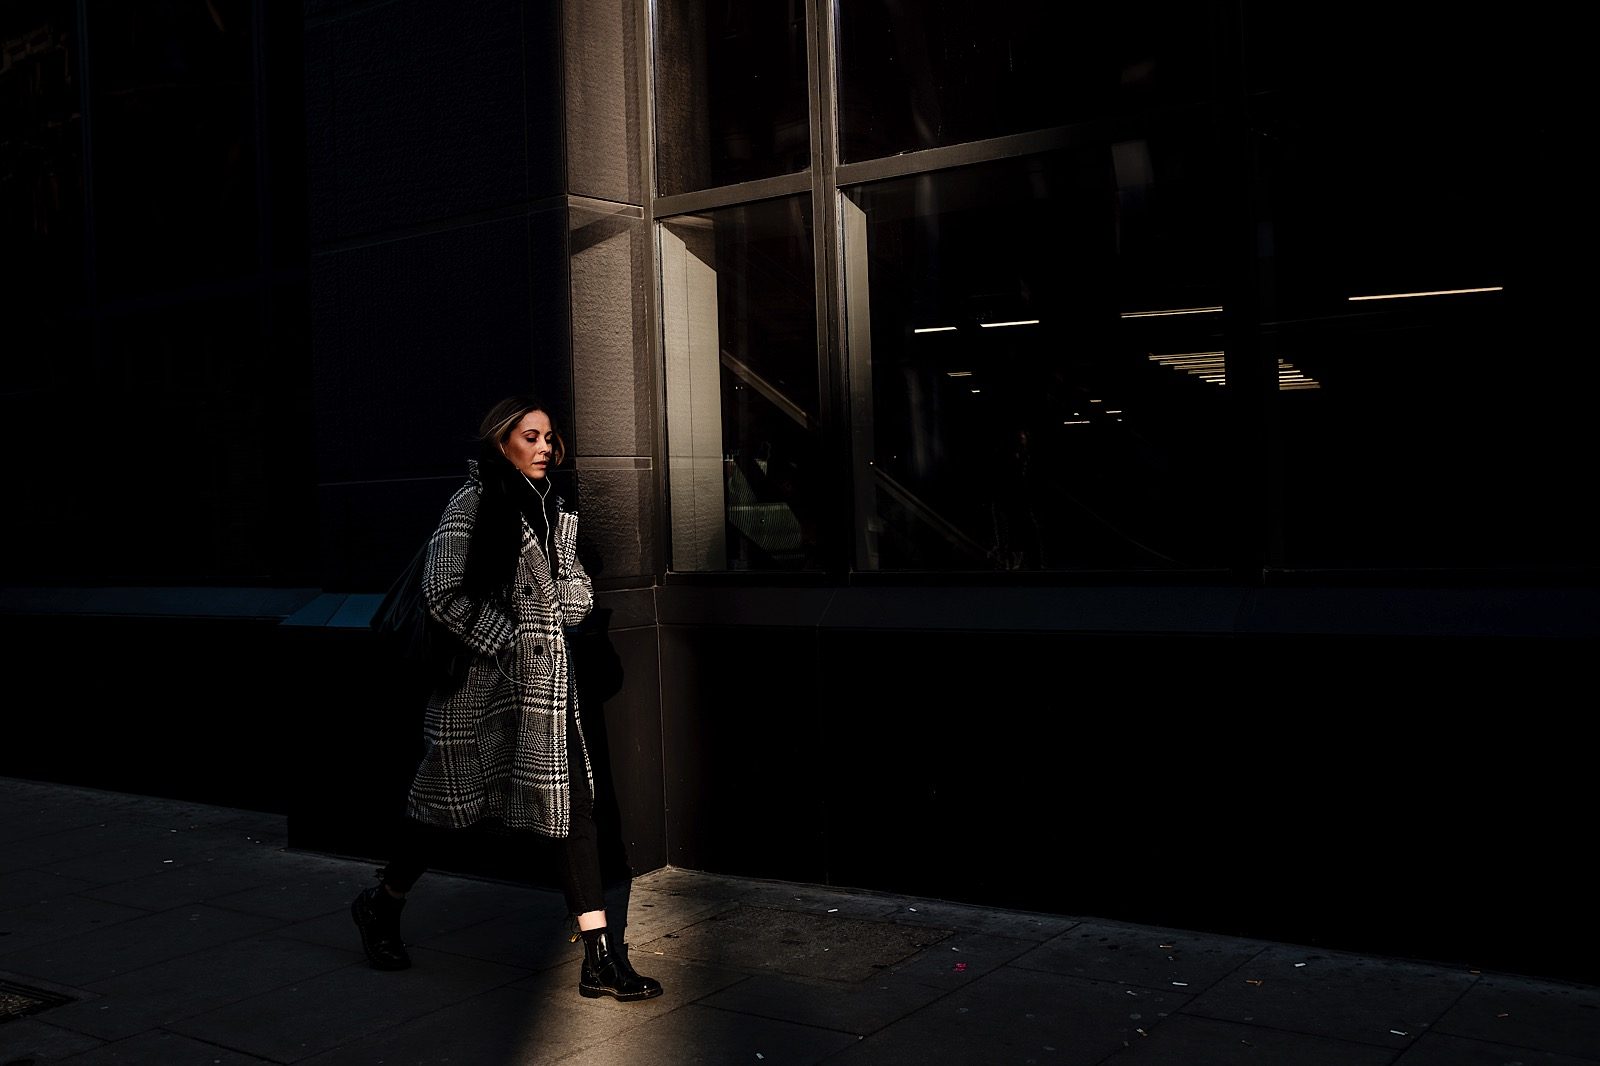 Street Photo of a girl walking into a shaft of light